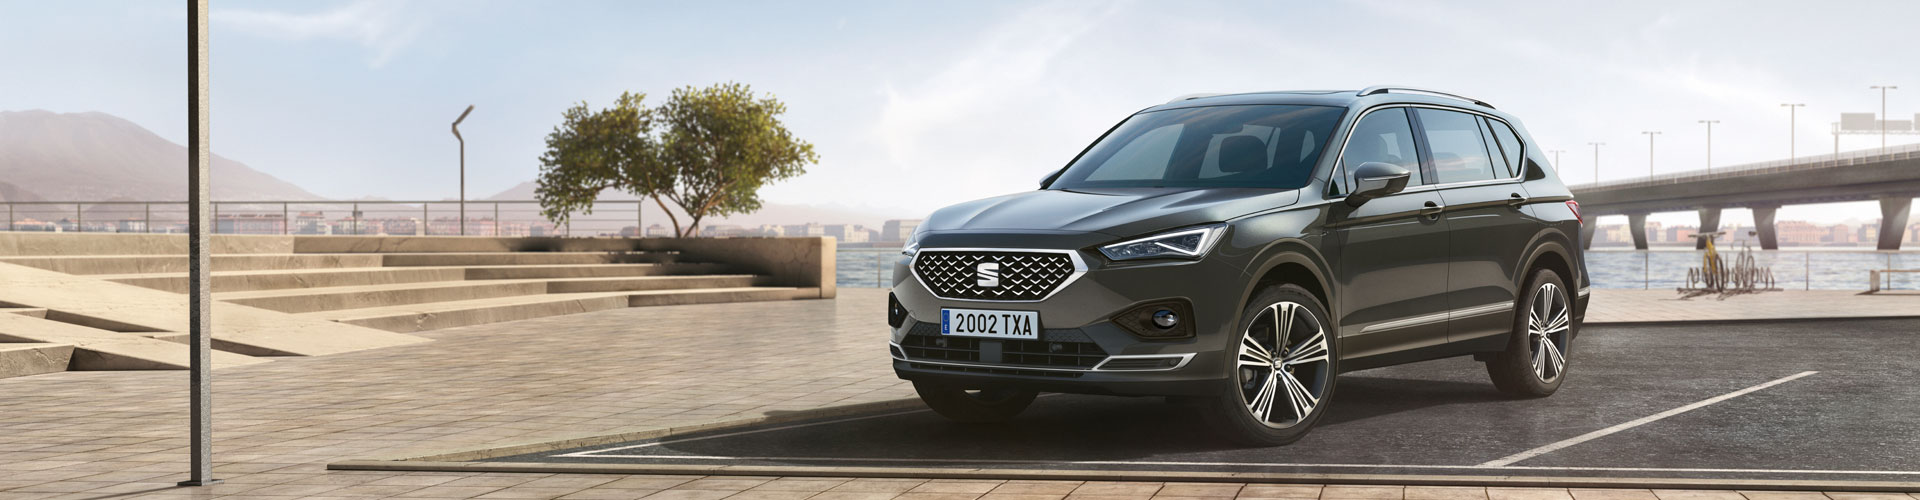 SEAT Tarraco Banner